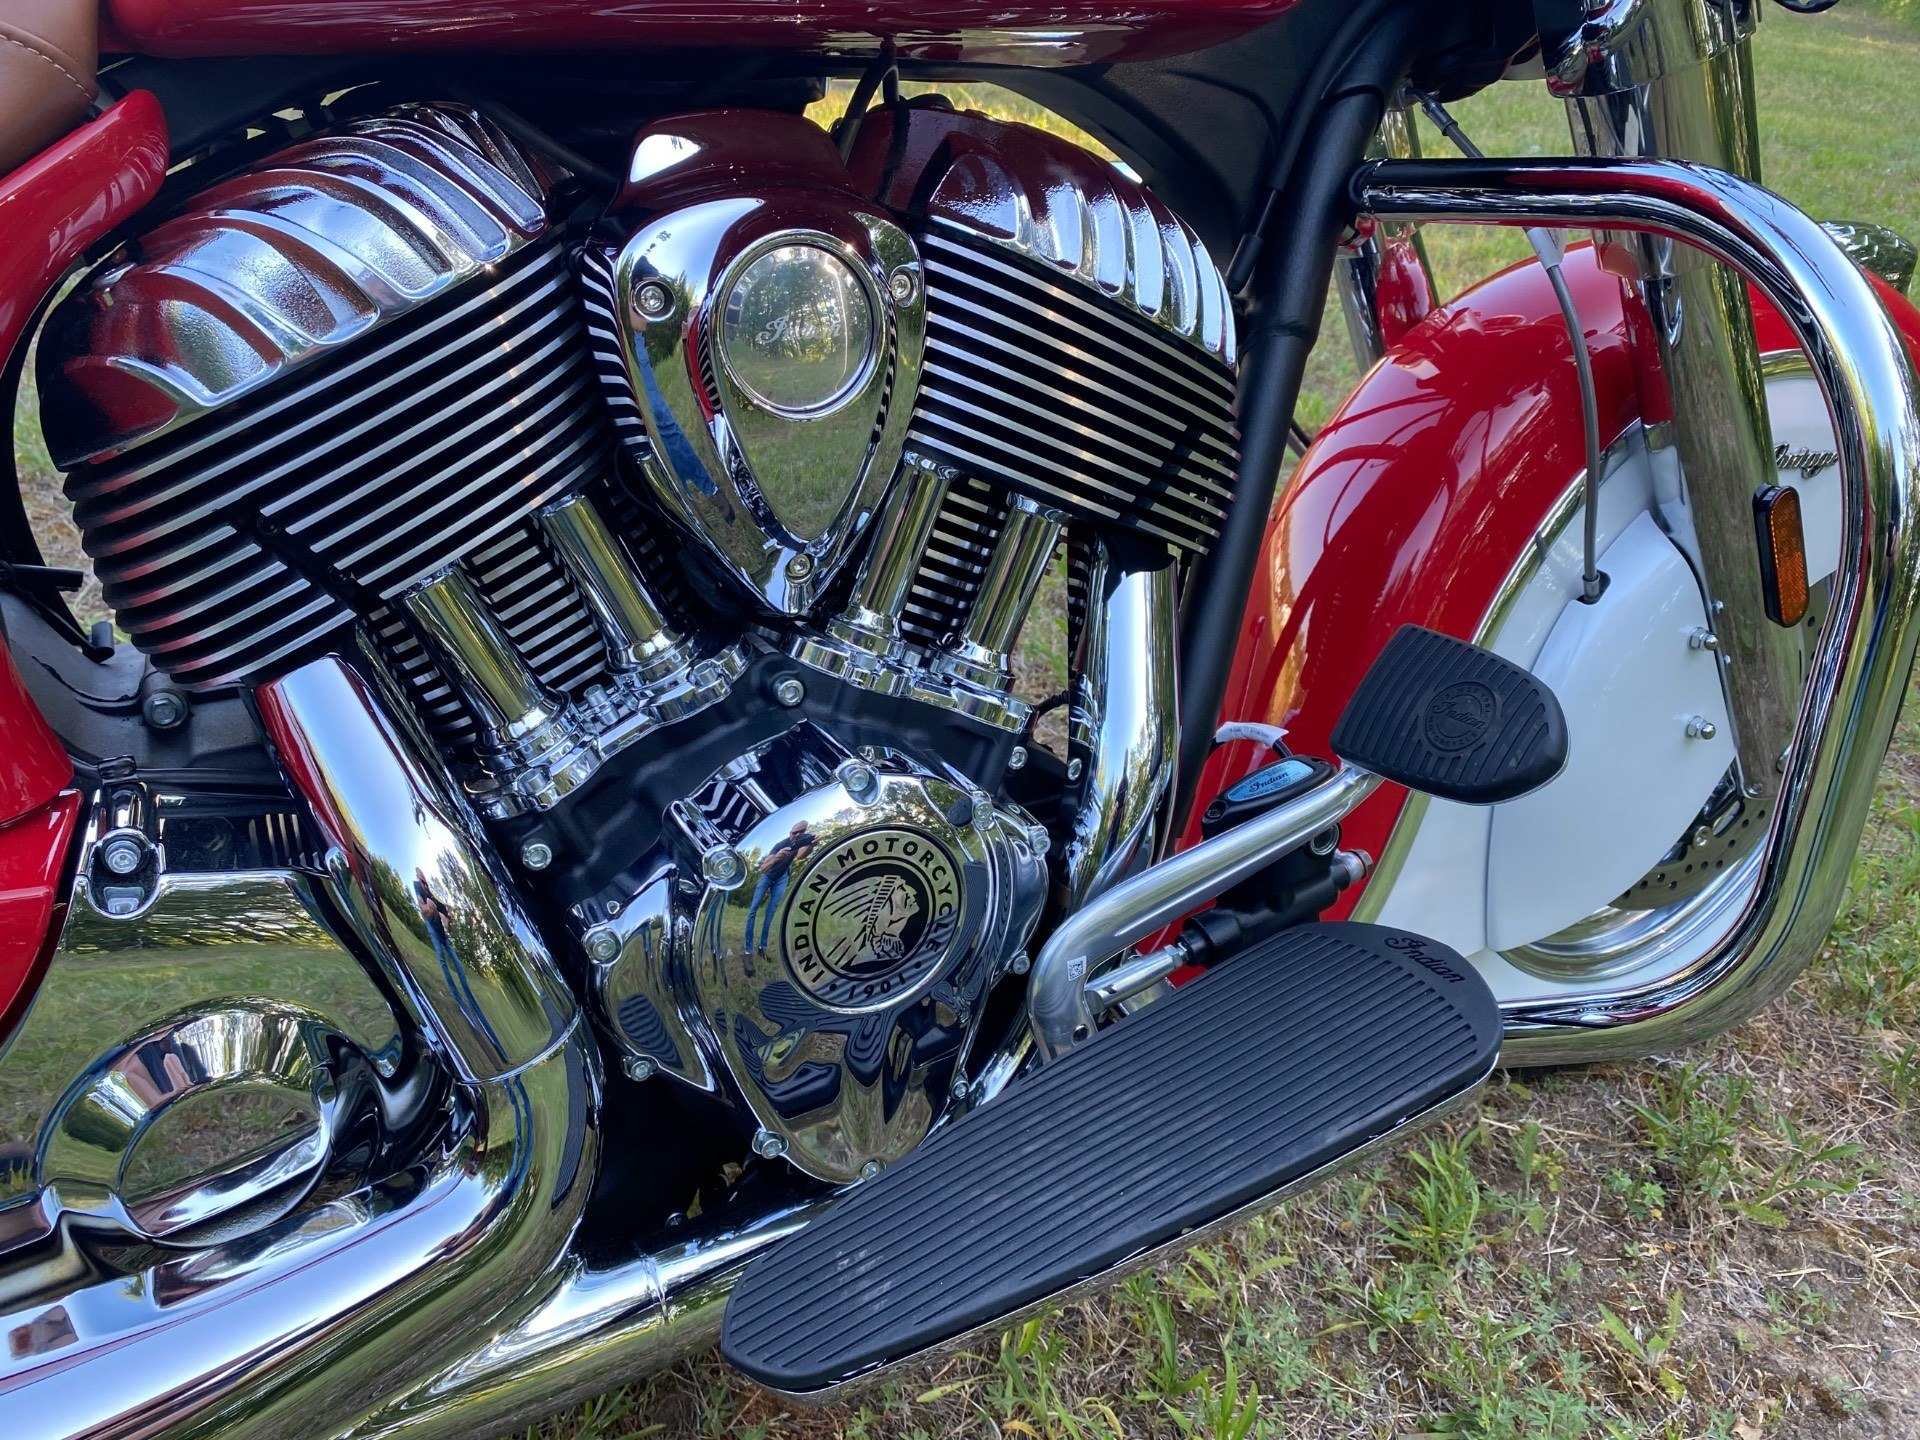 2020 Indian Chief® Vintage Icon Series in Westfield, Massachusetts - Photo 13